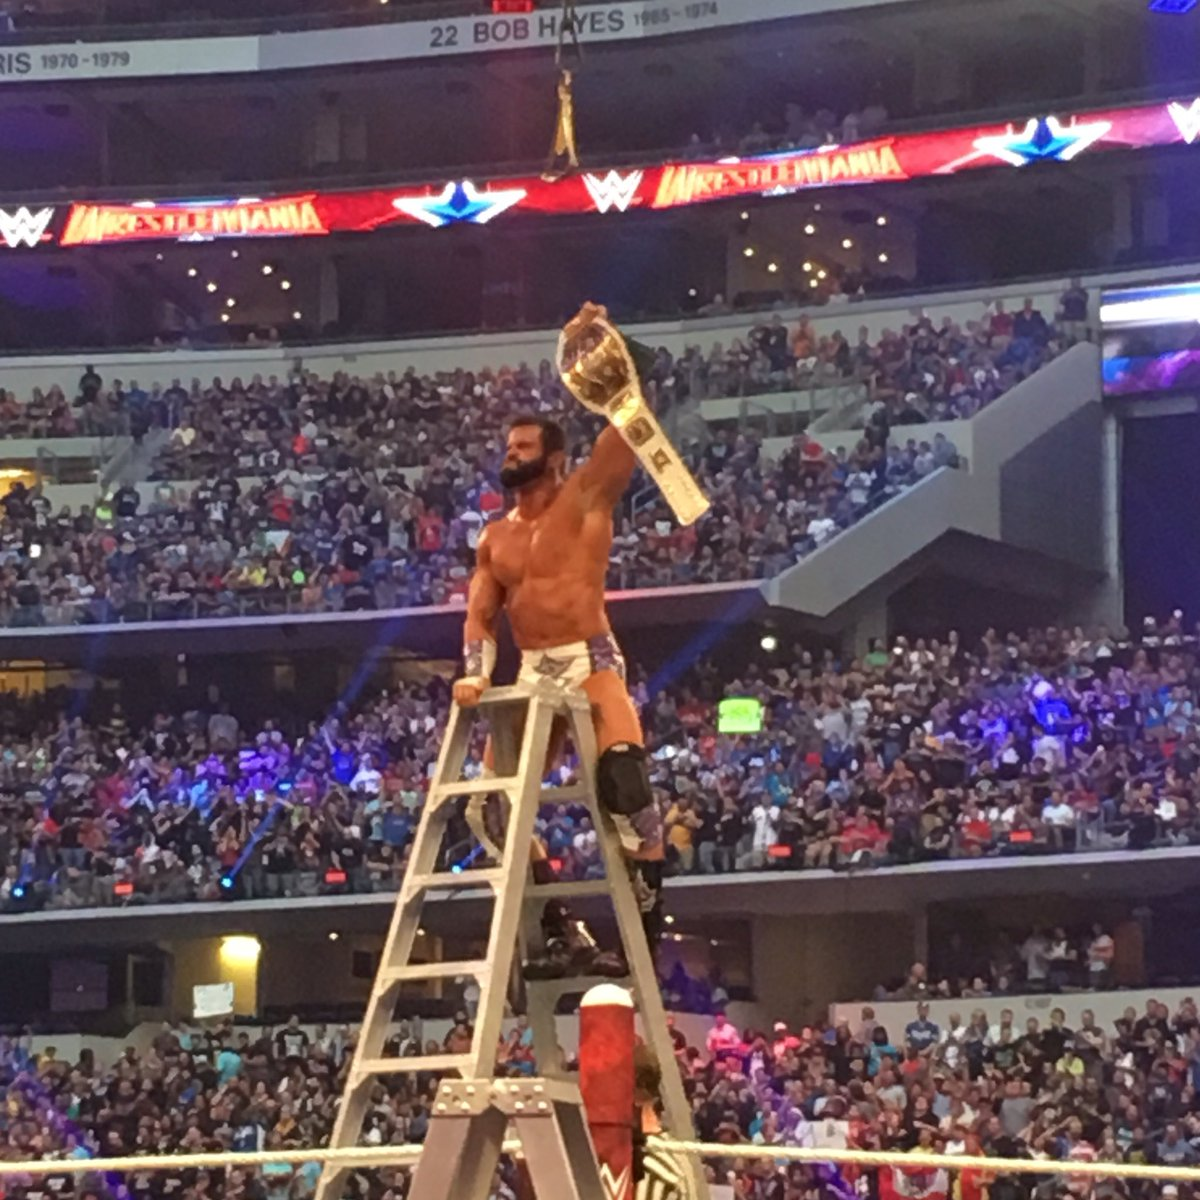 This isn't just a dream anymore. This is real life...#WrestleMania #WWWYKI https://t.co/inZHf646EI